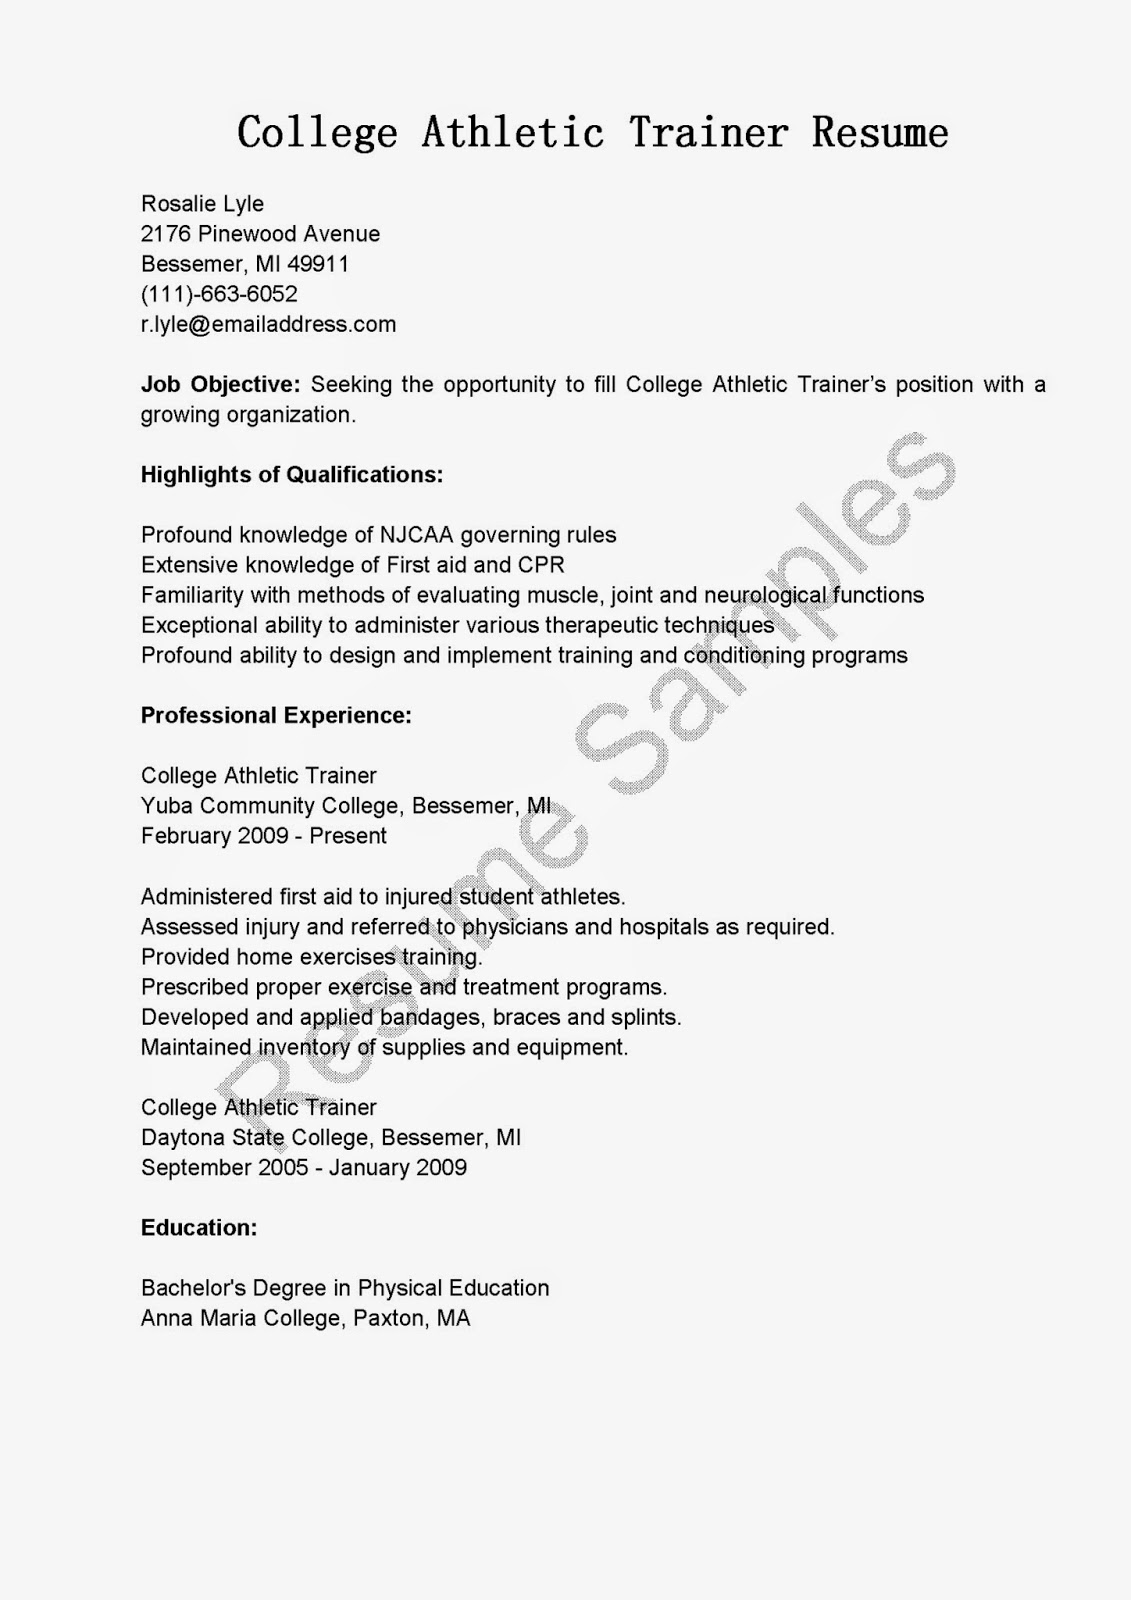 Resume samples college athletic trainer resume sample for Cover letter for strength and conditioning coach